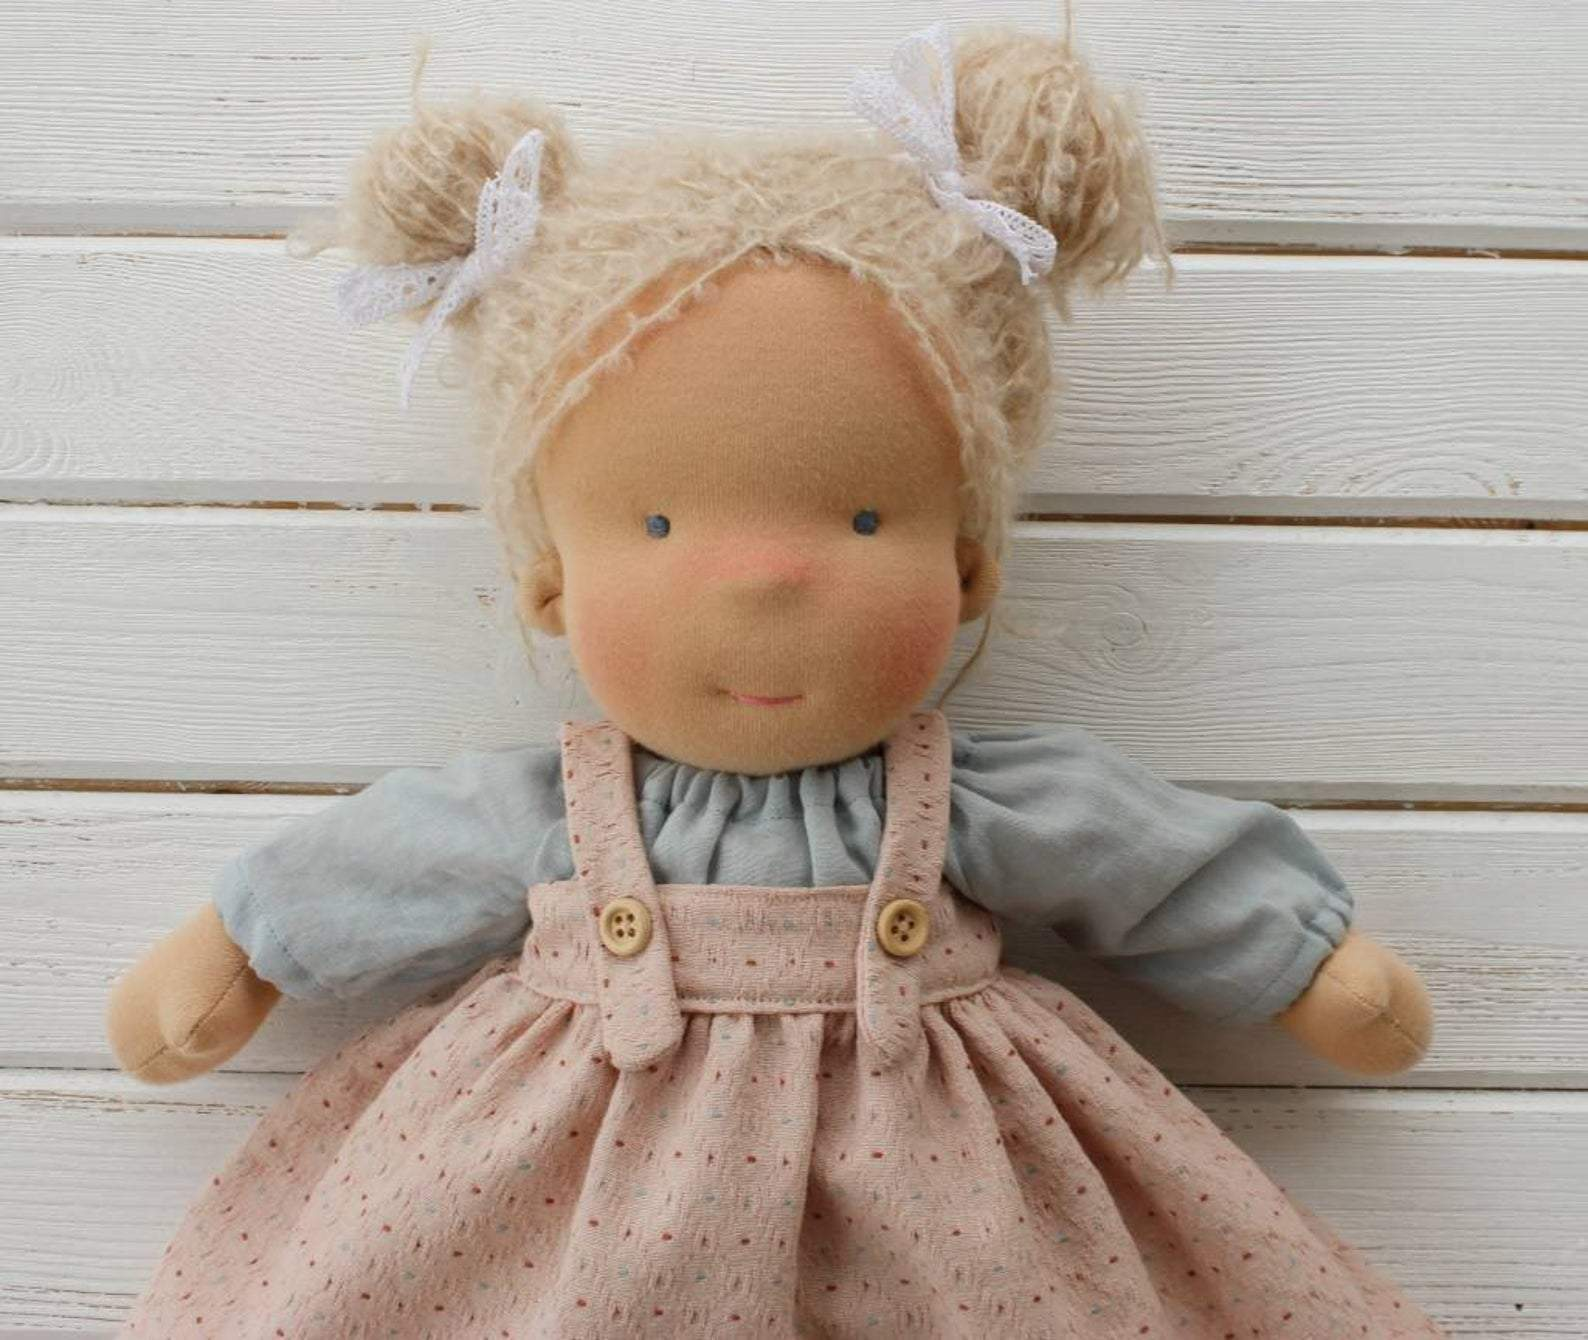 CUSTOM Waldorf Doll Waldorfdoll Waldorfinspireddoll Natural Fiber Doll Waldorf Doll Clothes Soft Doll Cuddle Doll(PRE ORDER.NEXT SHIPPING DAY 7 DAYS)